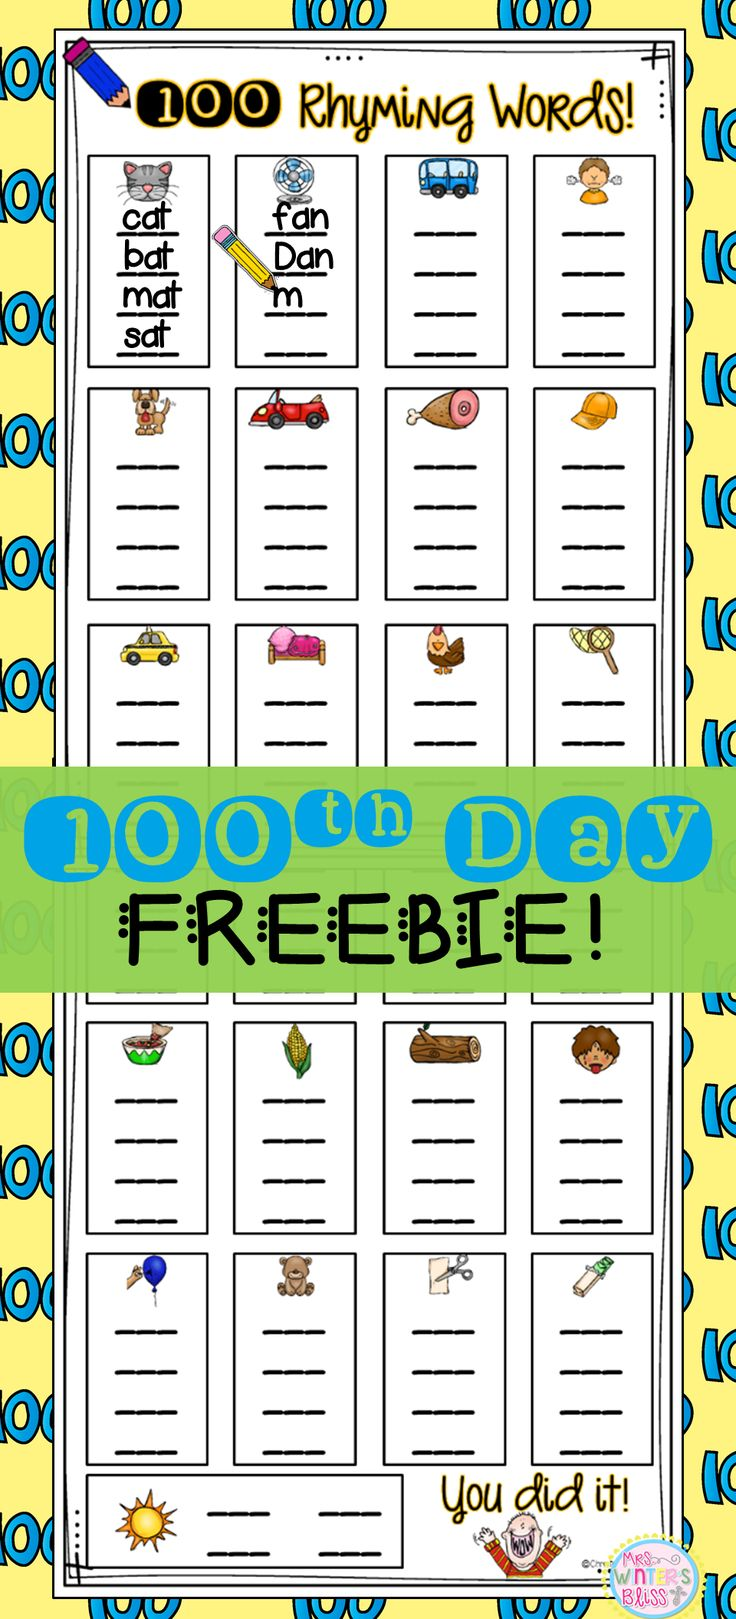 100th Day of school FREEBIE! Perfect for a word work center or homework